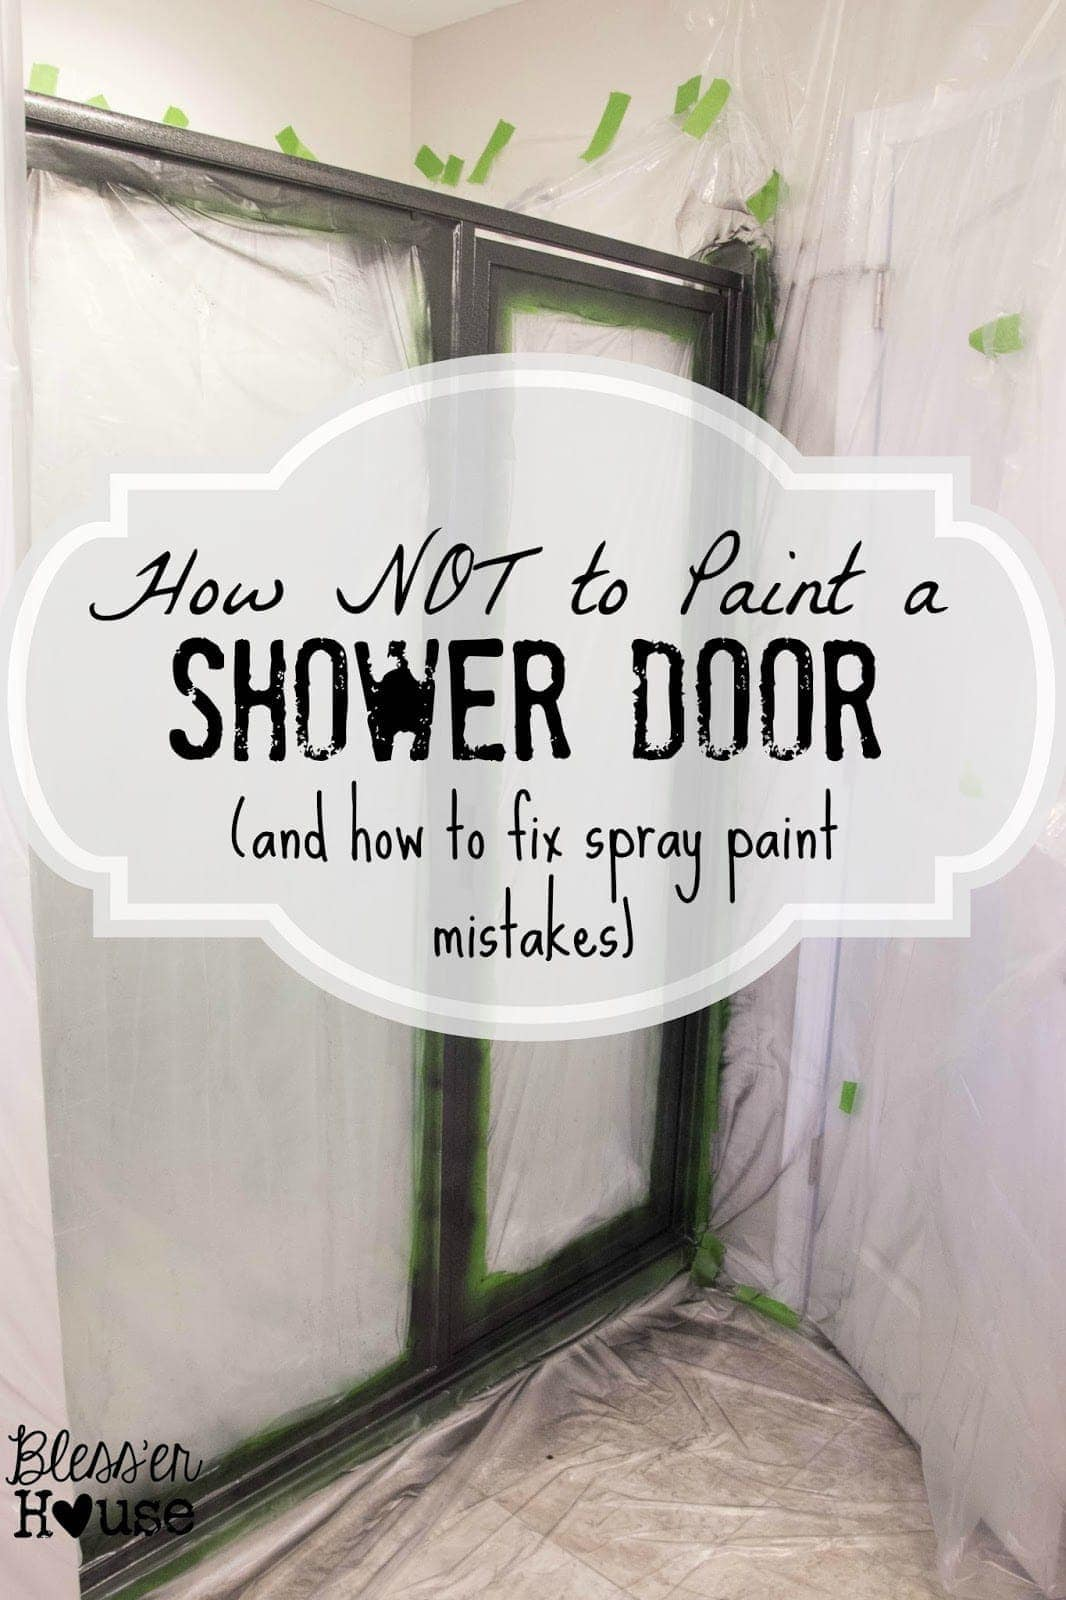 How NOT to Paint a Shower Door (And How to Fix Spray Paint Mistakes)